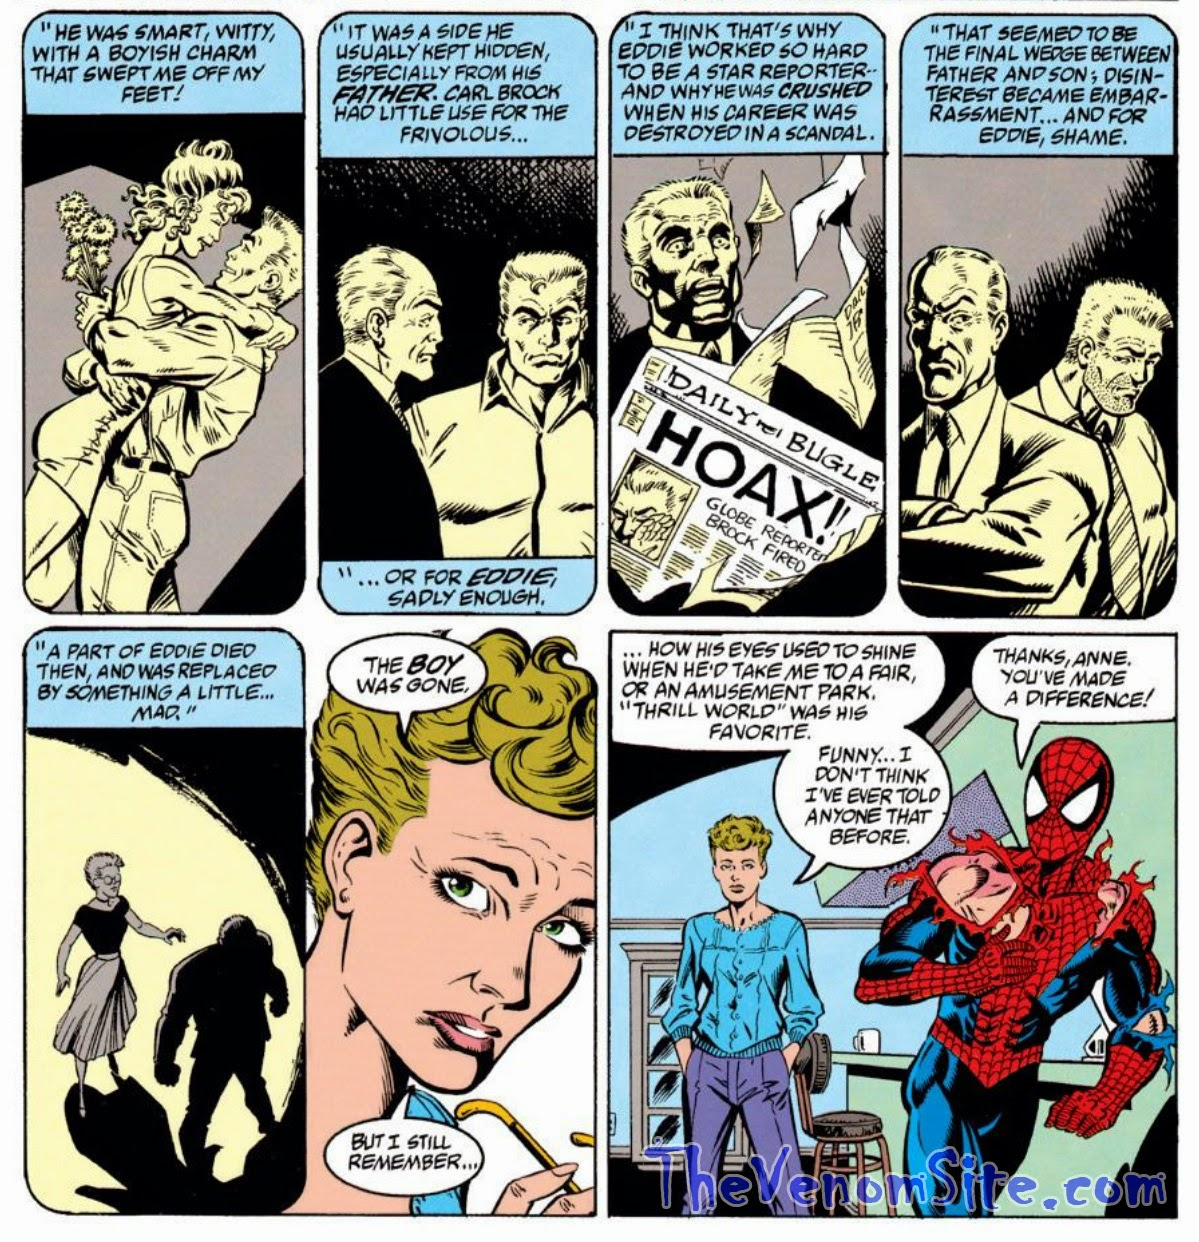 Read Ann Weying's introduction in the pages of Spider-Man: Vengeance of Venom trade paperback available on Amazon